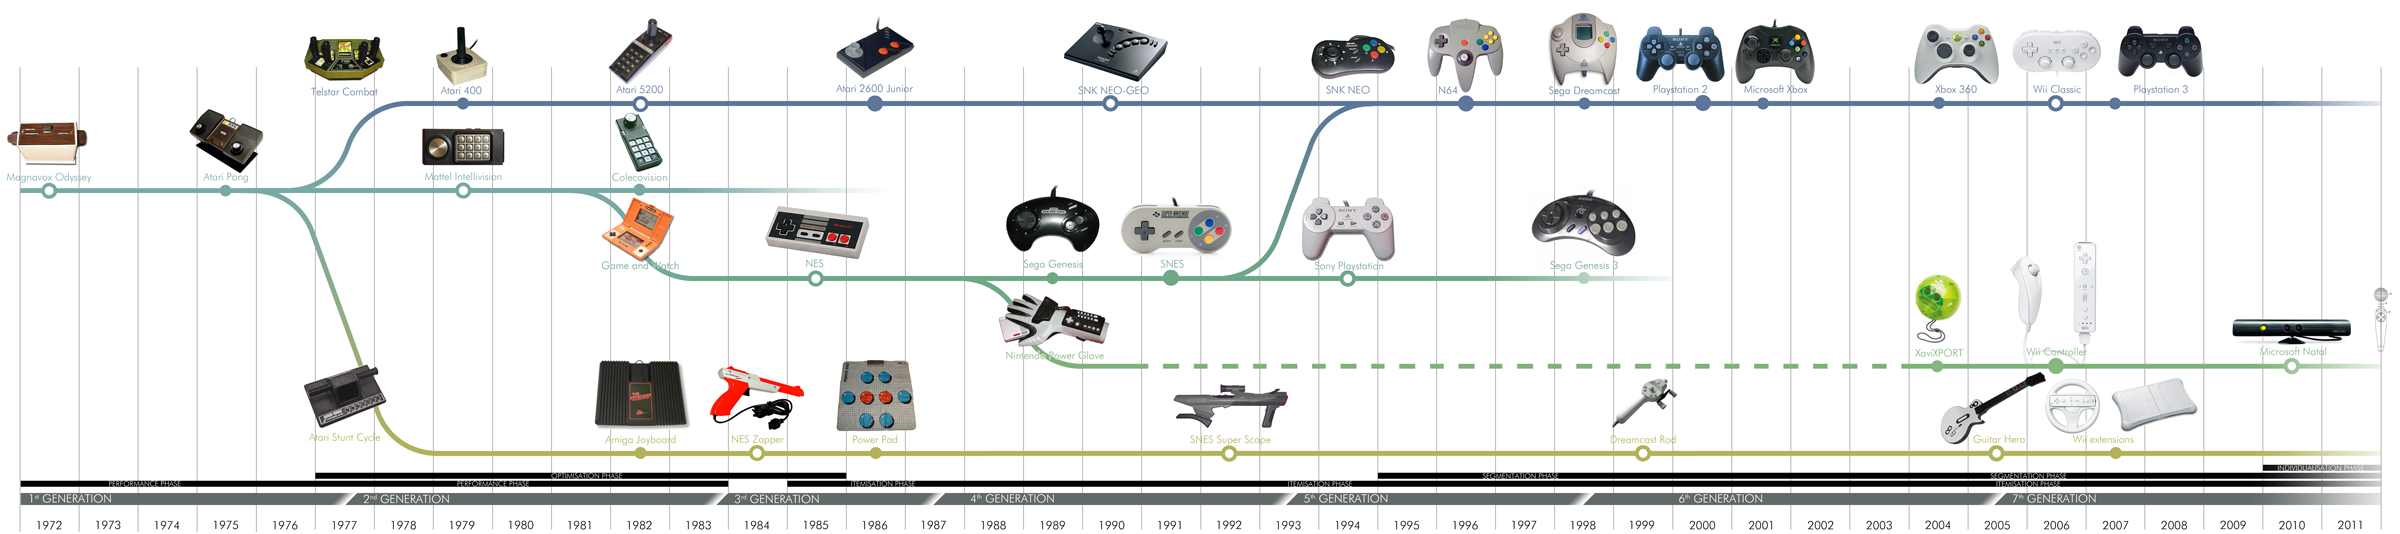 Image borrowed from [http://mbcgrob.nl/portfolio_img/designstudies/game_controller_timeline_large.png]